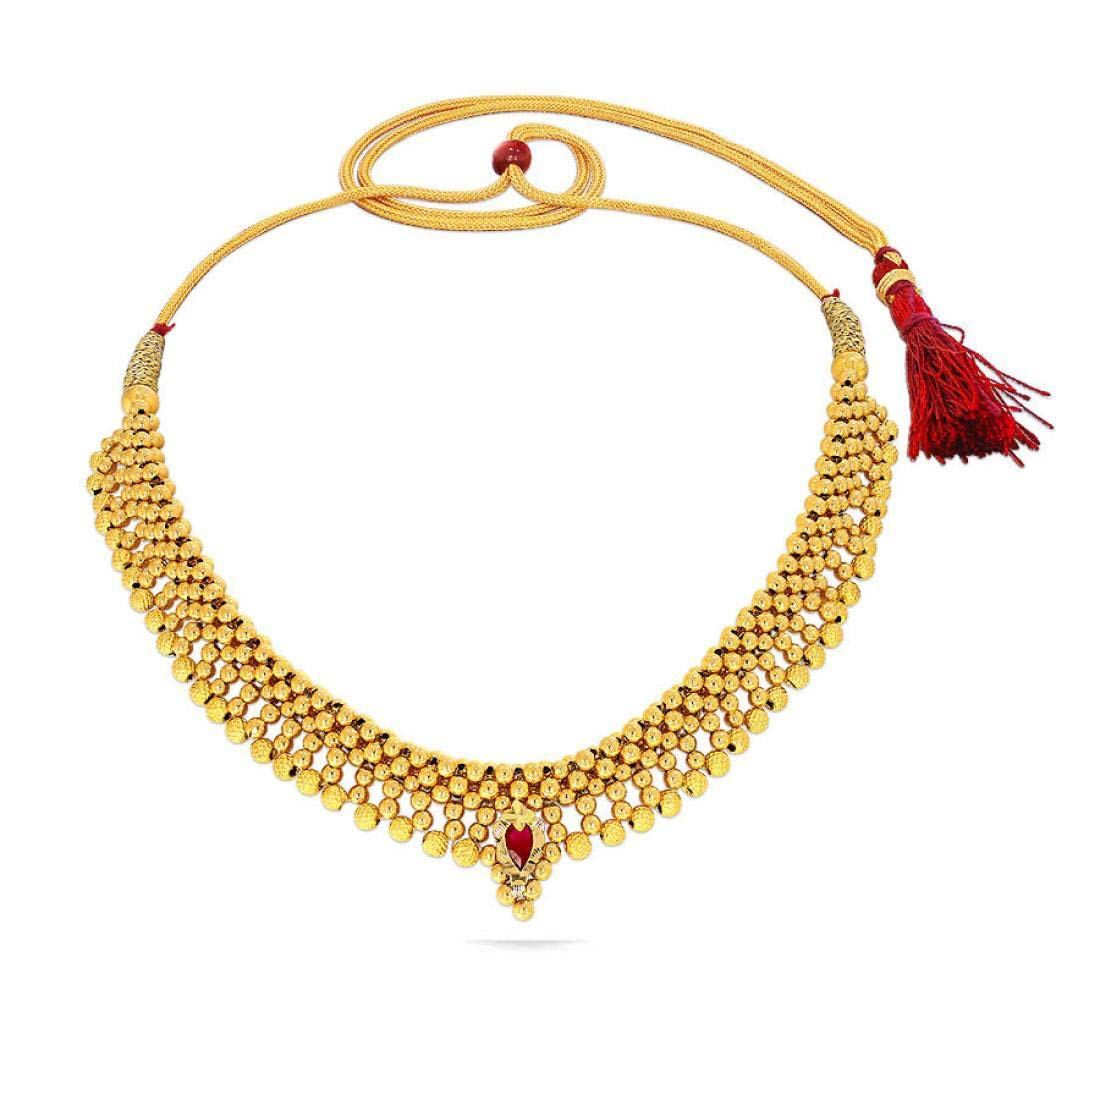 Buy Candere By Kalyan Jewellers 22k 916 Yellow Gold And Ruby Choker Necklace For Women At Amazon In